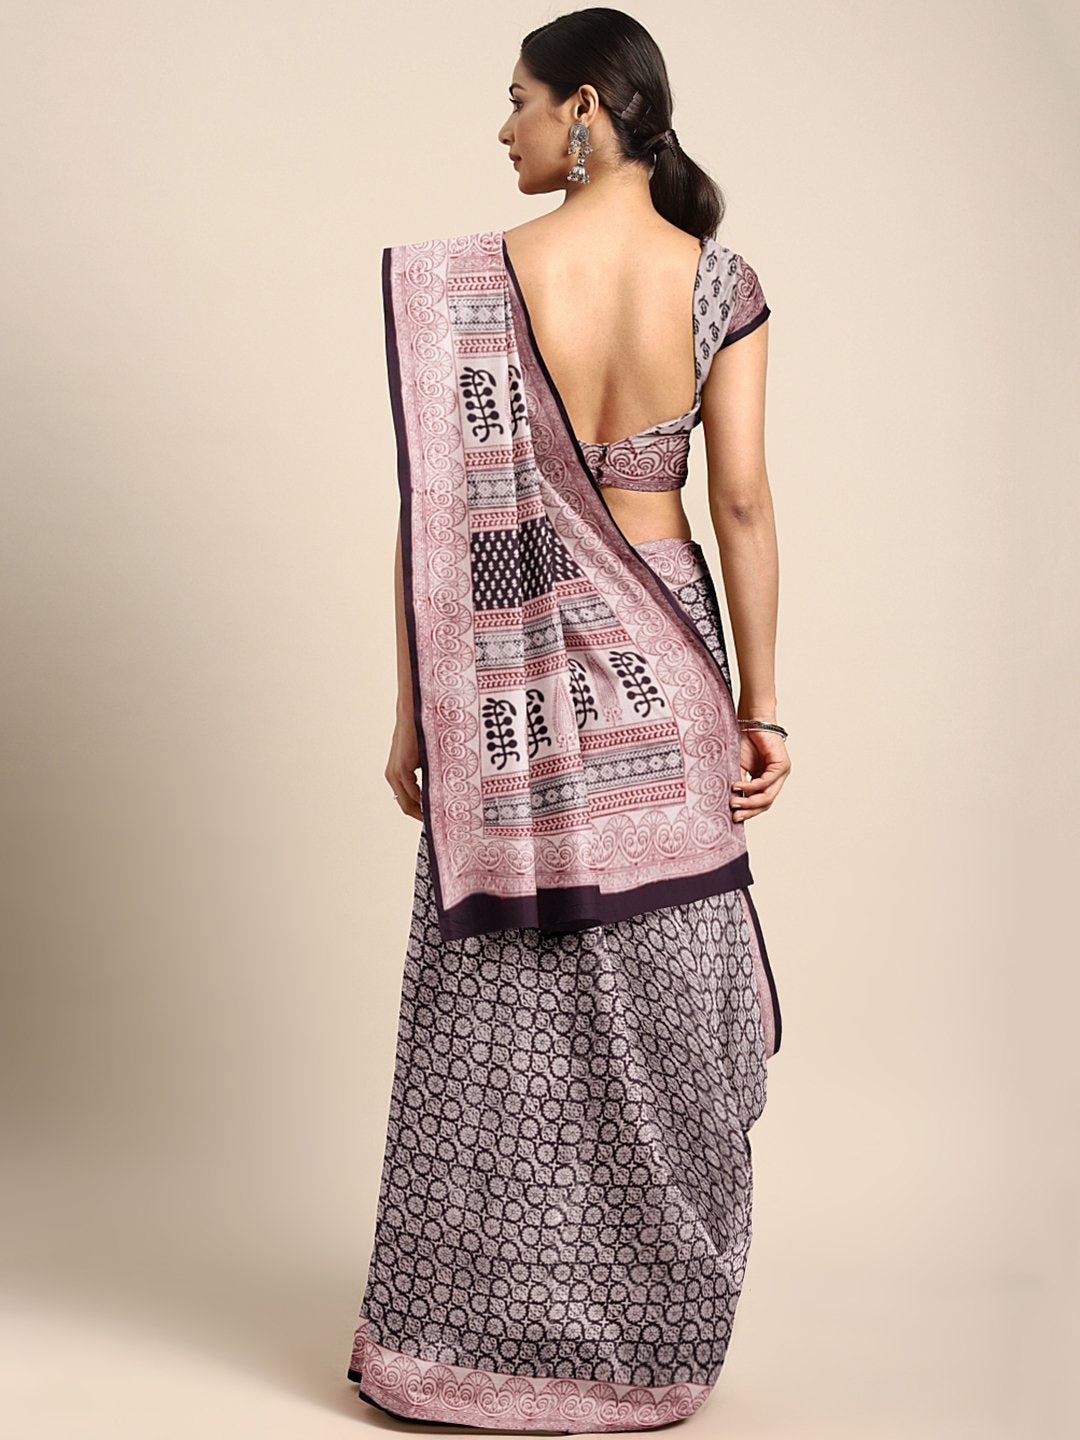 Black Off-White Handblock Print Bagh Saree-Saree-Kalakari India-MRBASA0024-Bagh, Cotton, Geographical Indication, Hand Blocks, Hand Crafted, Heritage Prints, Natural Dyes, Sarees, Sustainable Fabrics-[Linen,Ethnic,wear,Fashionista,Handloom,Handicraft,Indigo,blockprint,block,print,Cotton,Chanderi,Blue, latest,classy,party,bollywood,trendy,summer,style,traditional,formal,elegant,unique,style,hand,block,print, dabu,booti,gift,present,glamorous,affordable,collectible,Sari,Saree,printed, holi, Diwali